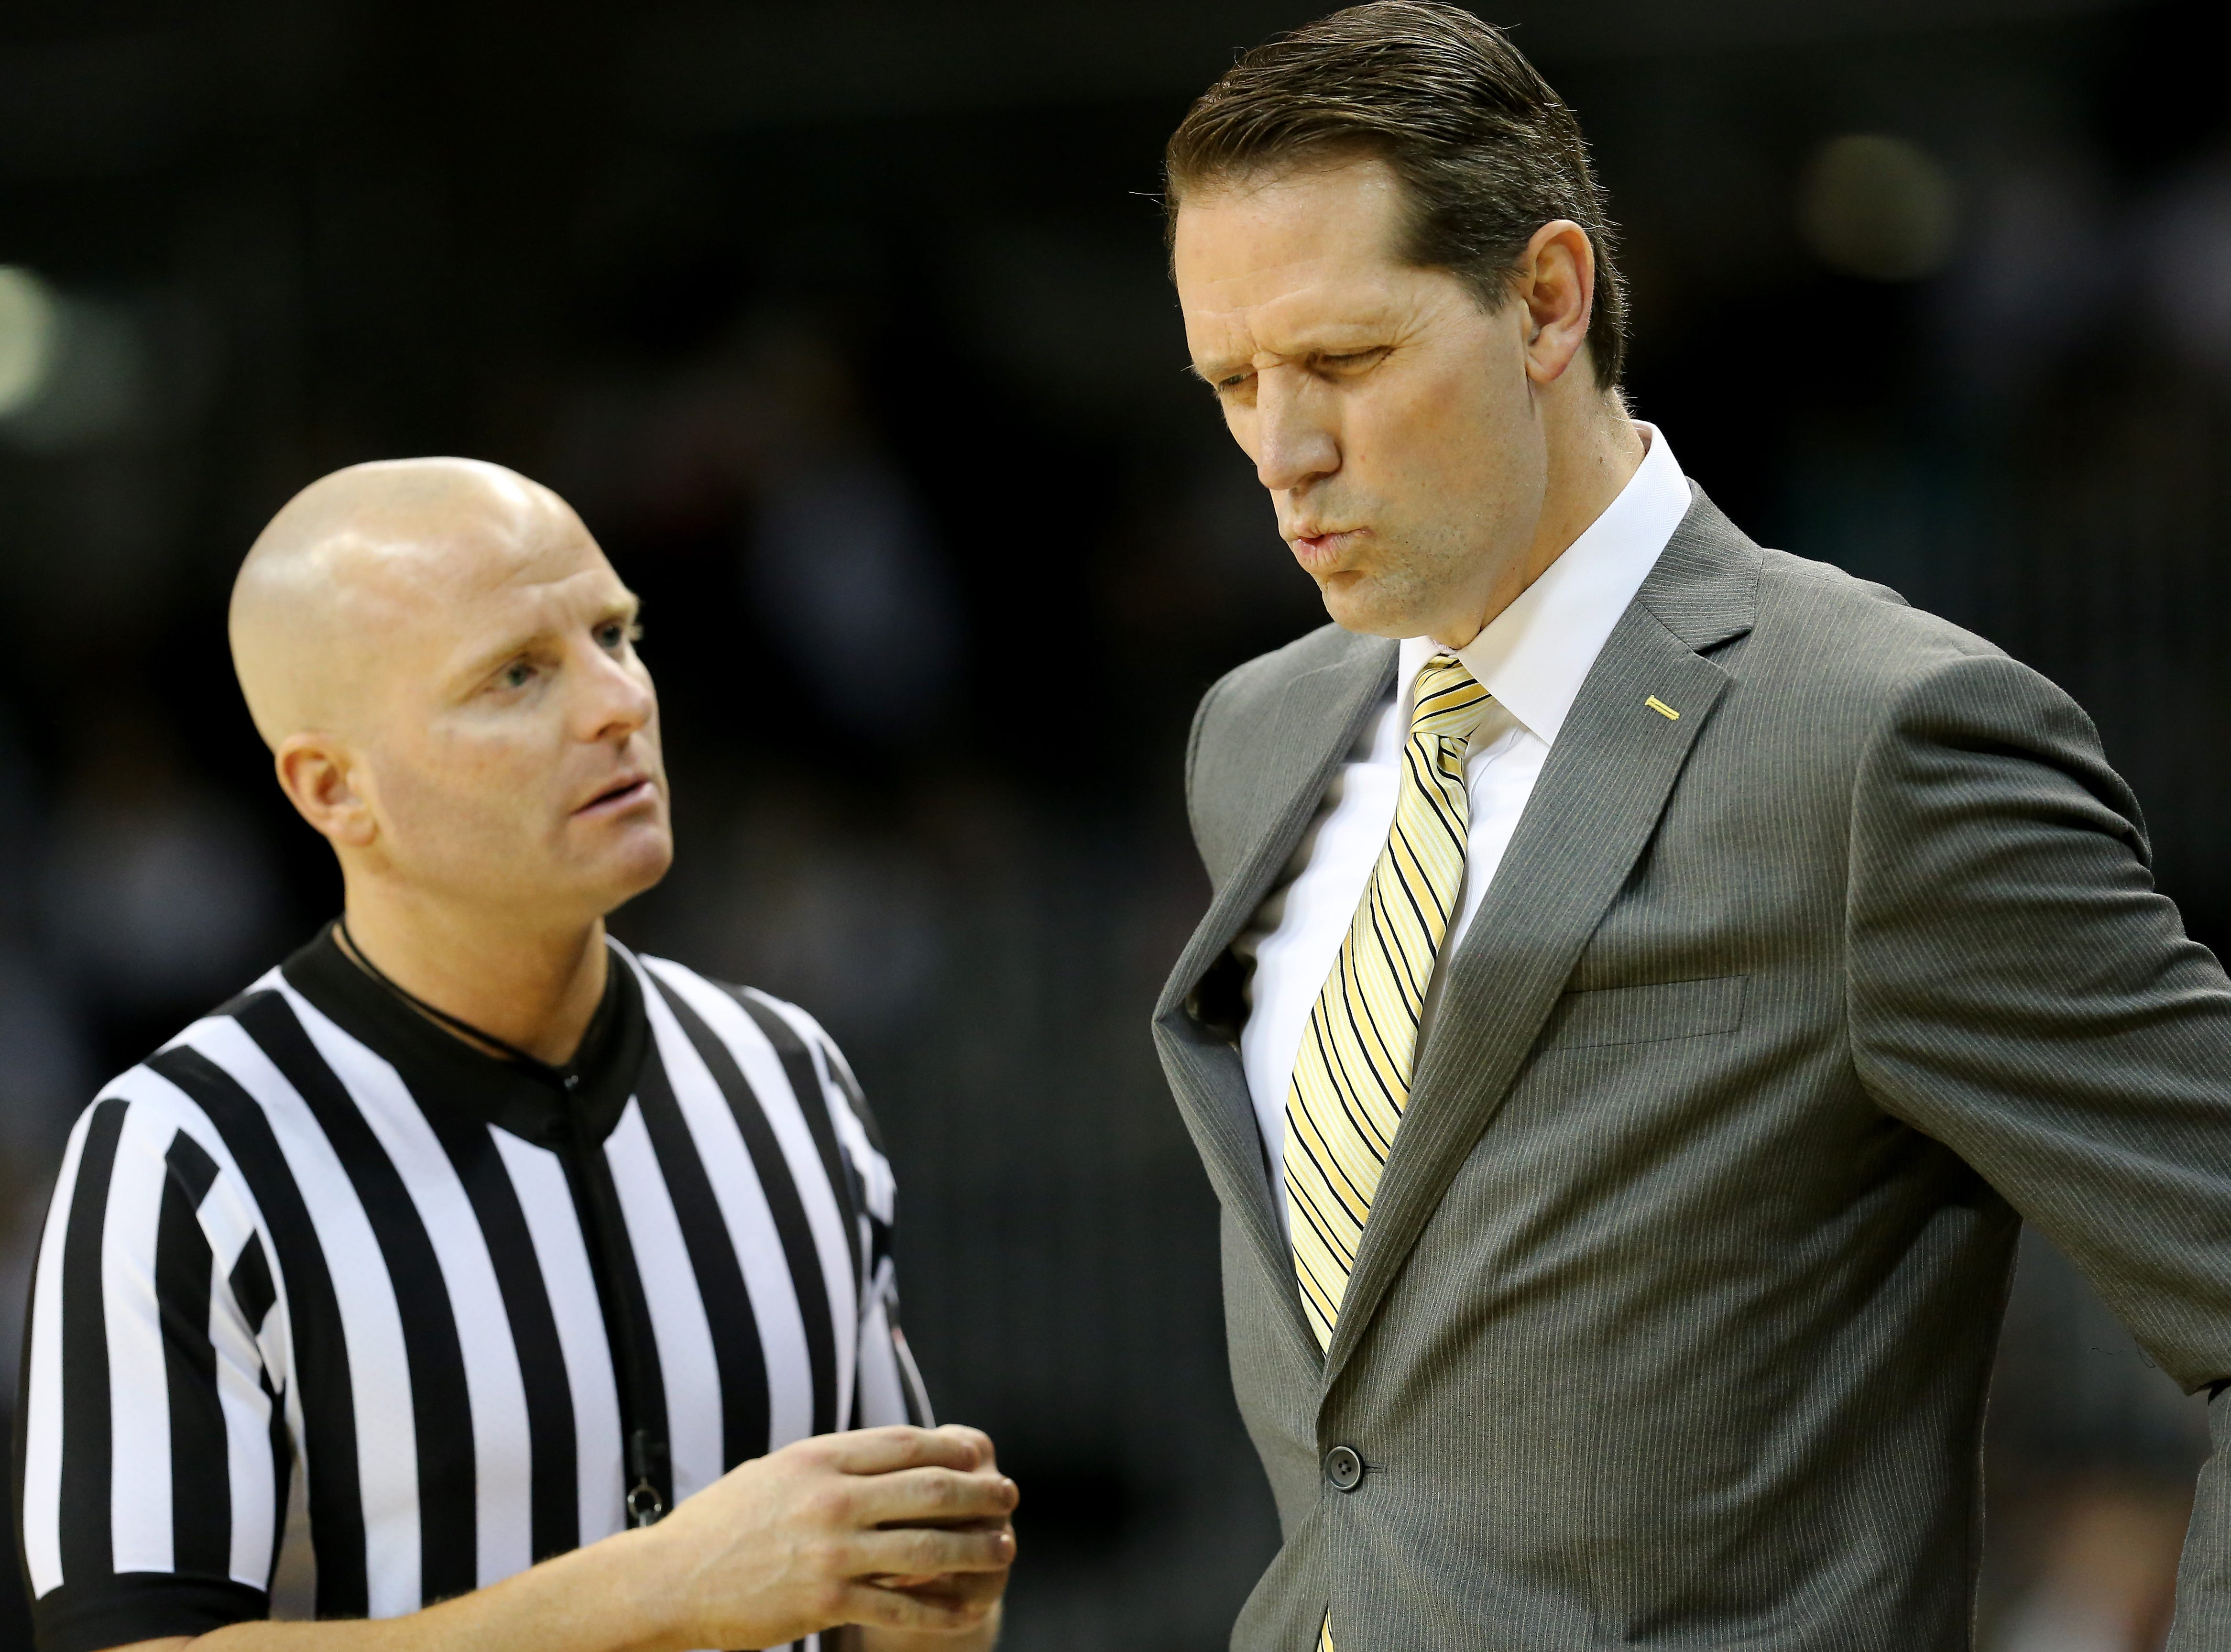 Northern Kentucky Norse head coach John Brannen reacts after receiving an explanation from an official in the second half of an NCAA basketball game against the Wright State Raiders, Friday, Jan. 11, 2019, at BB&T Arena in Highland Heights, Ky.